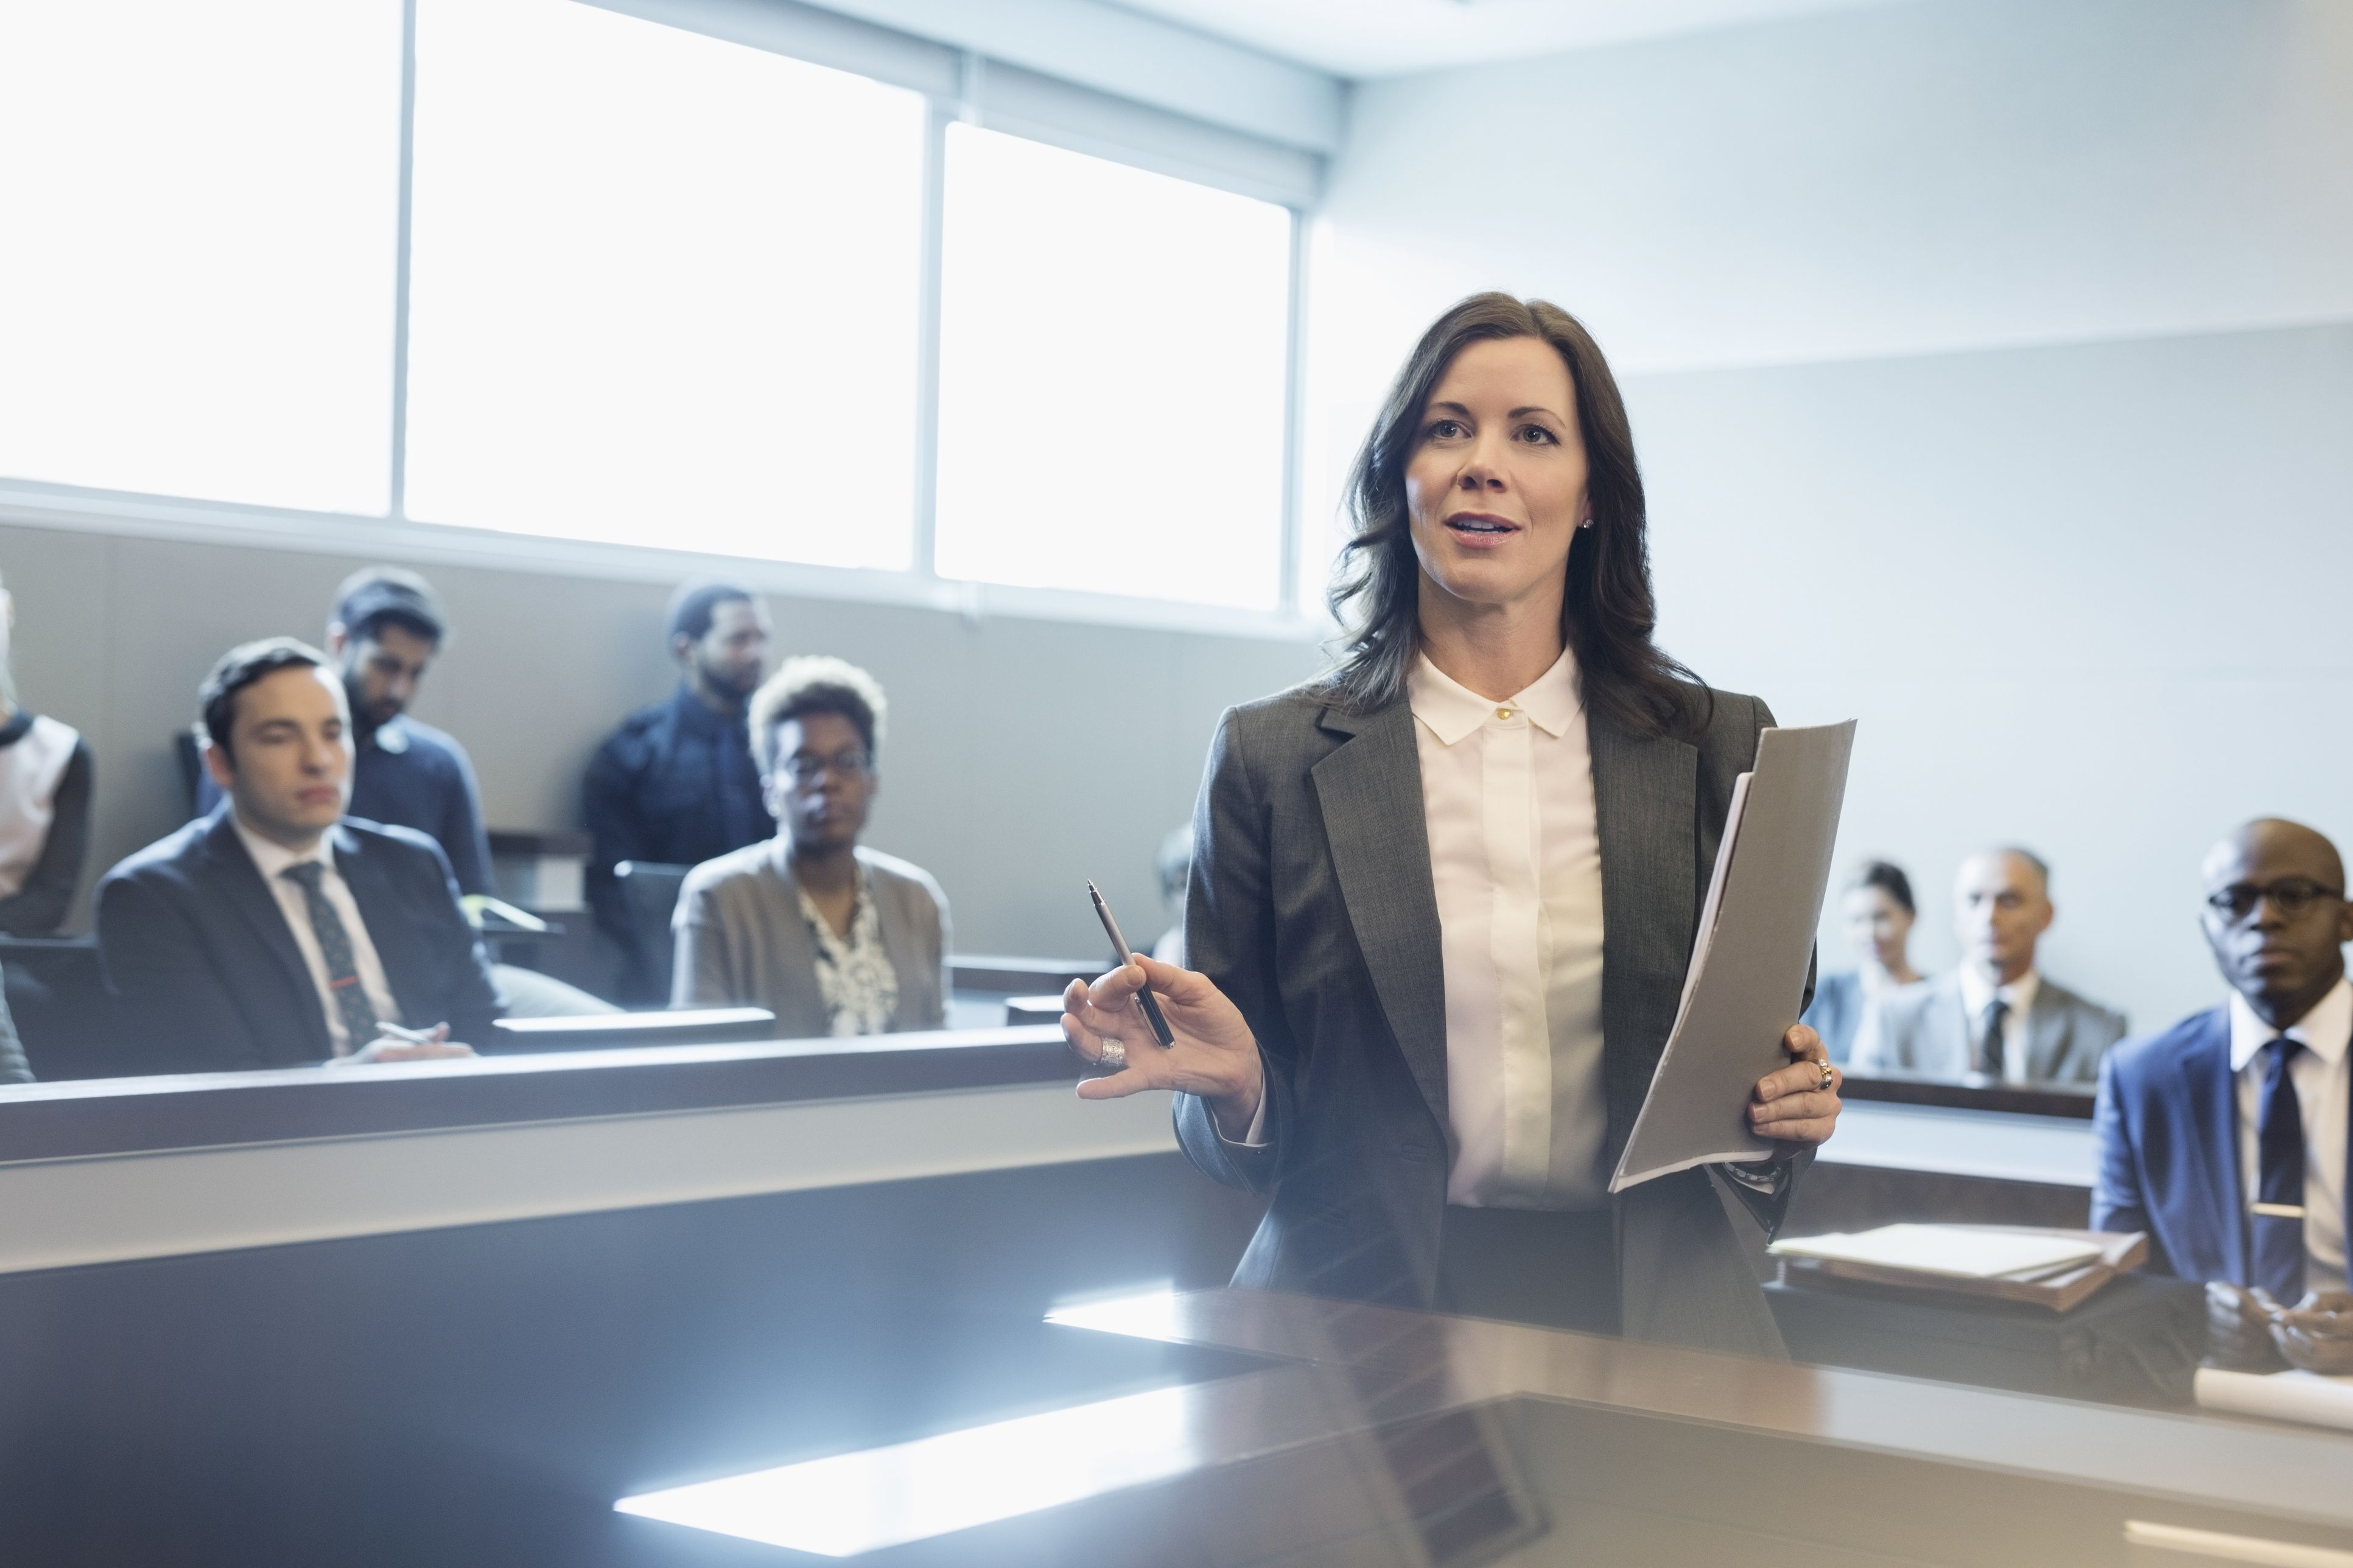 an introduction to the career of lawyer Anyone coming out of a phd program is surprisingly well prepared for law school   that will allow you to find a job at a law firm directly out of your phd program.